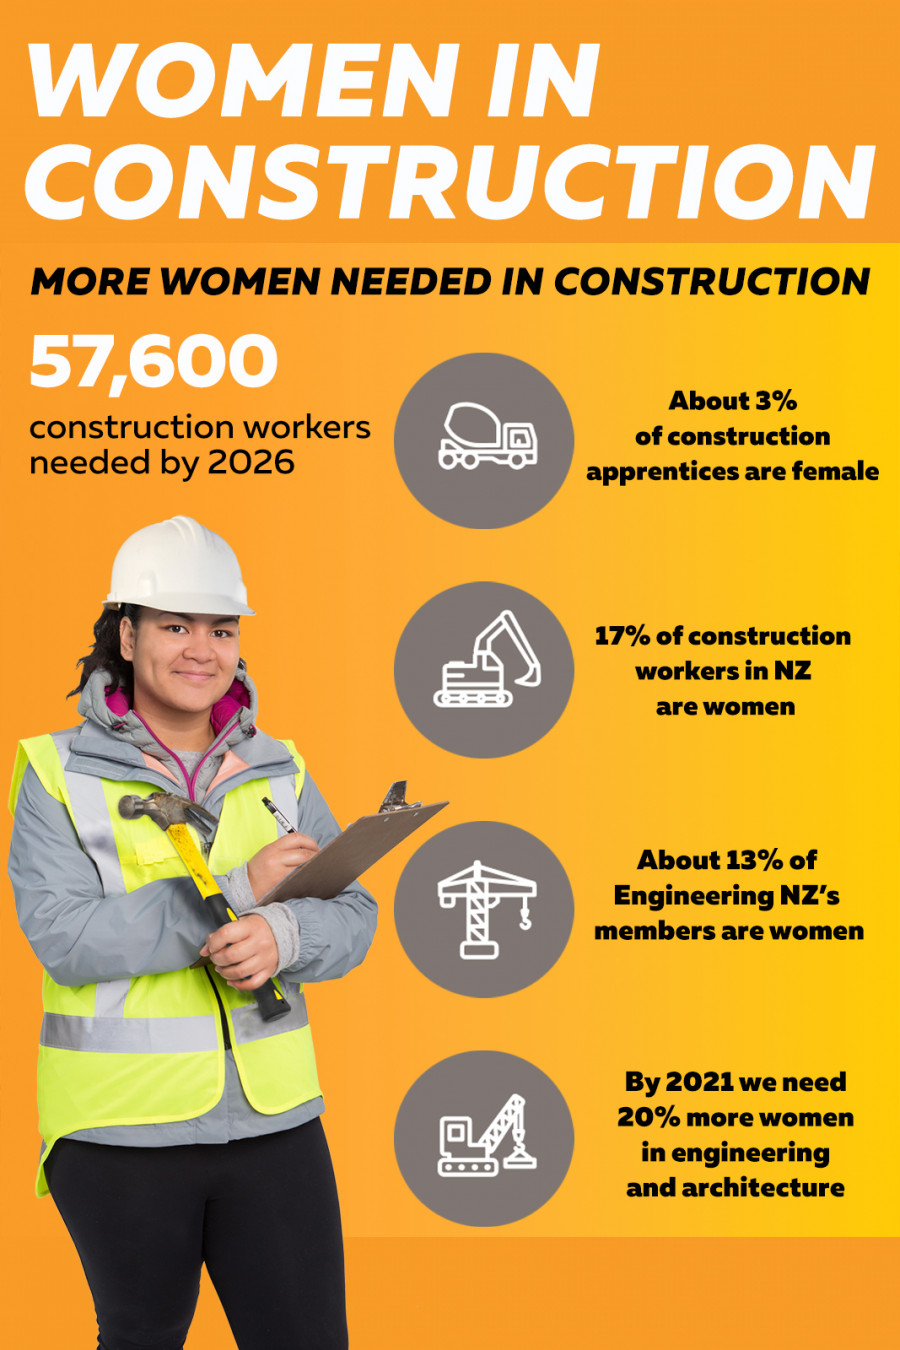 Infographic: Women in construction – more women needed in construction. 57,600 construction workers needed by 2026; About 3% of construction apprentices are female; 17% of construction workers in NZ are women; About 13% of Engineering NZ's members are women; By 2021 we need 20% more women in engineering and architecture.